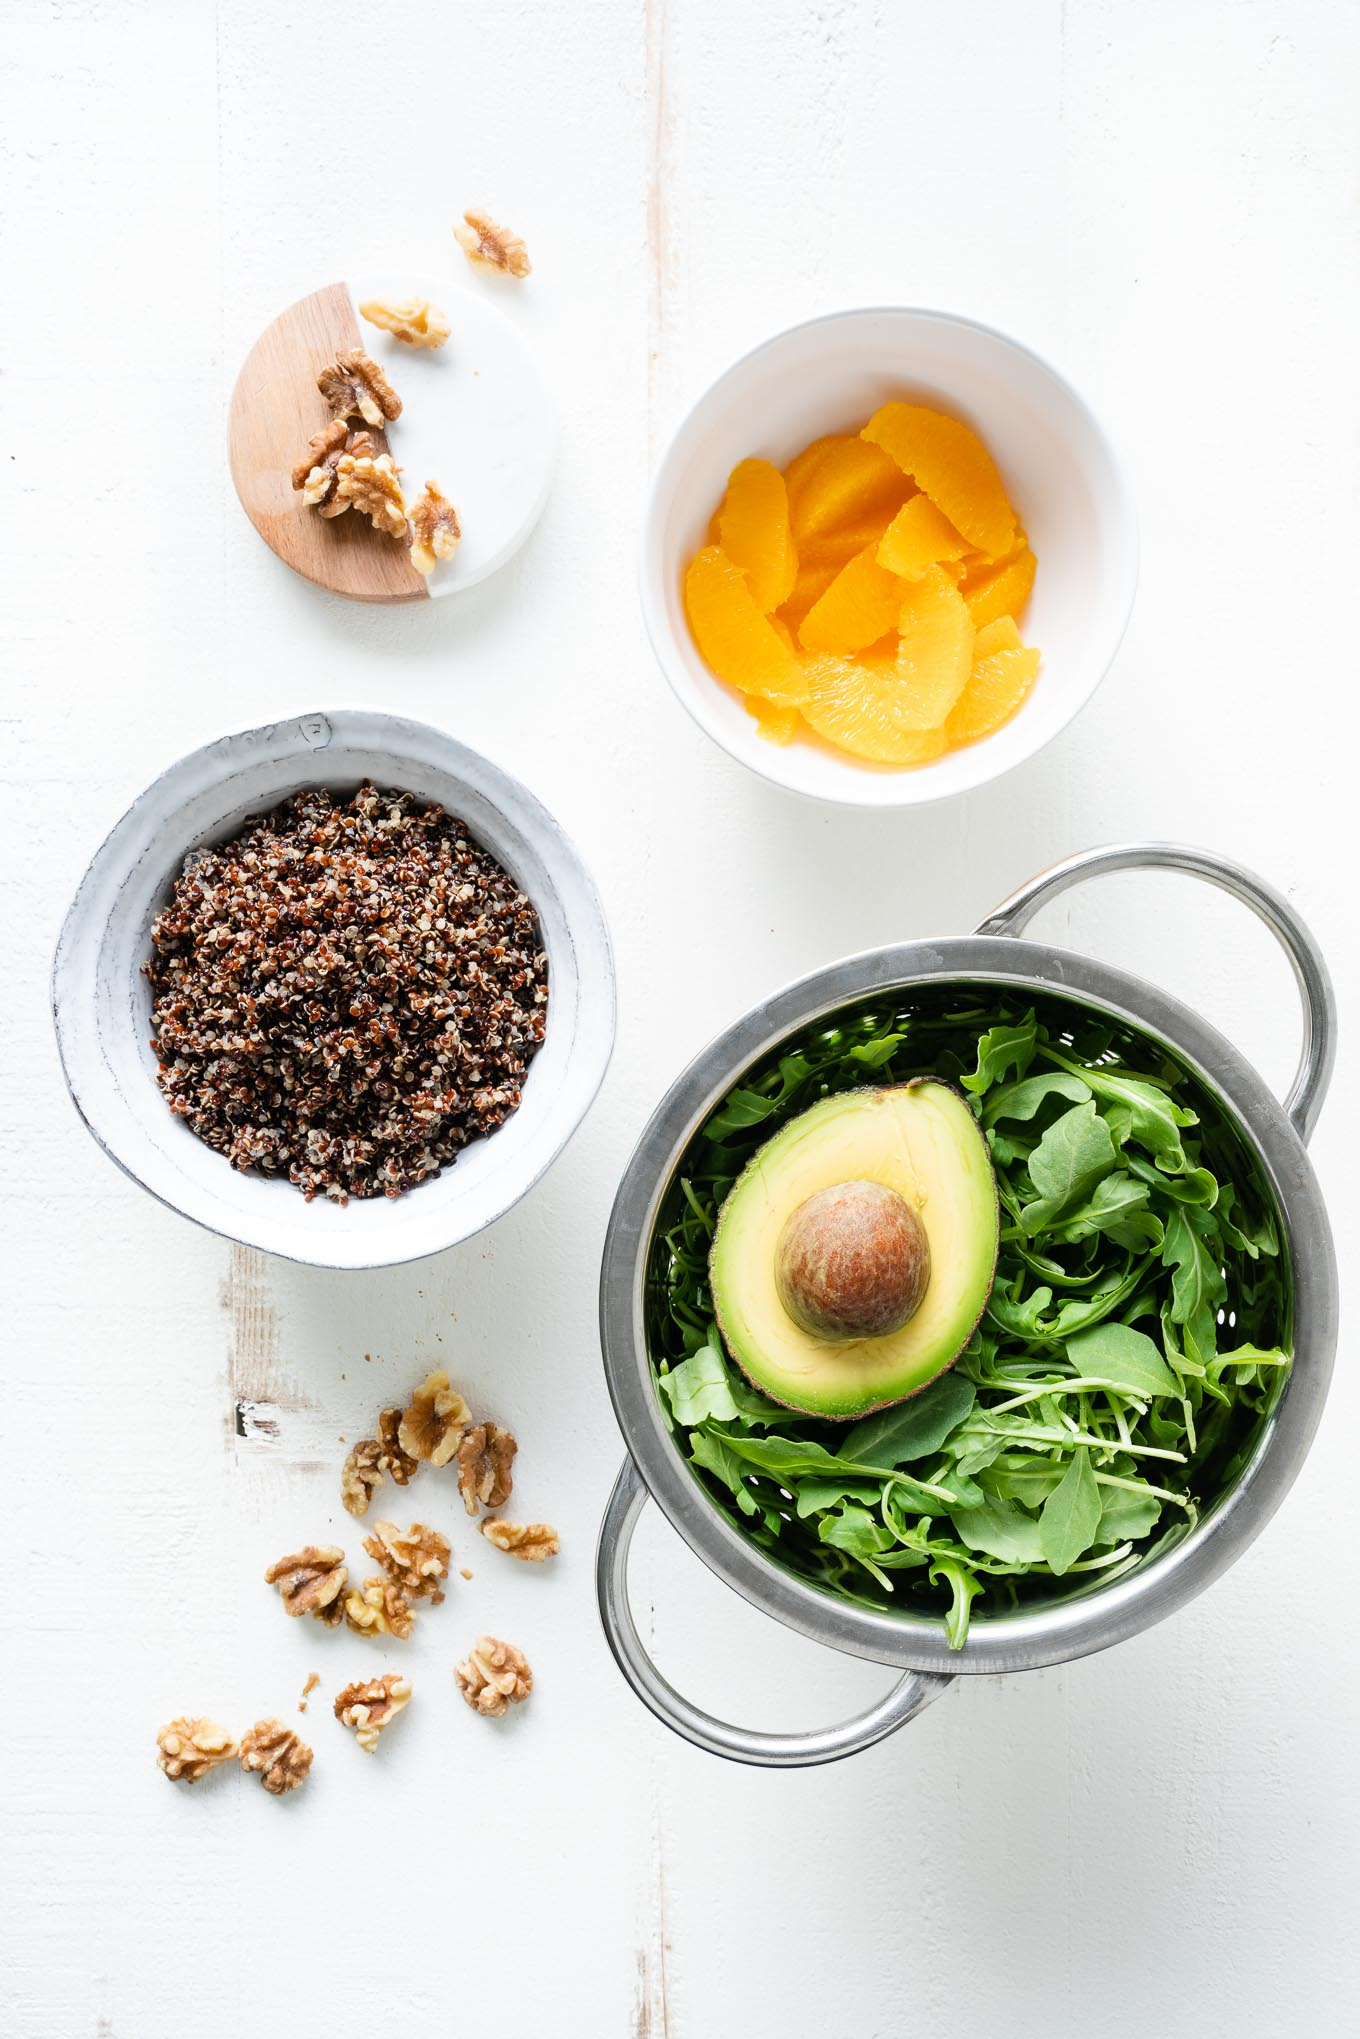 arugula avocado oranges quinoa walnuts on white table